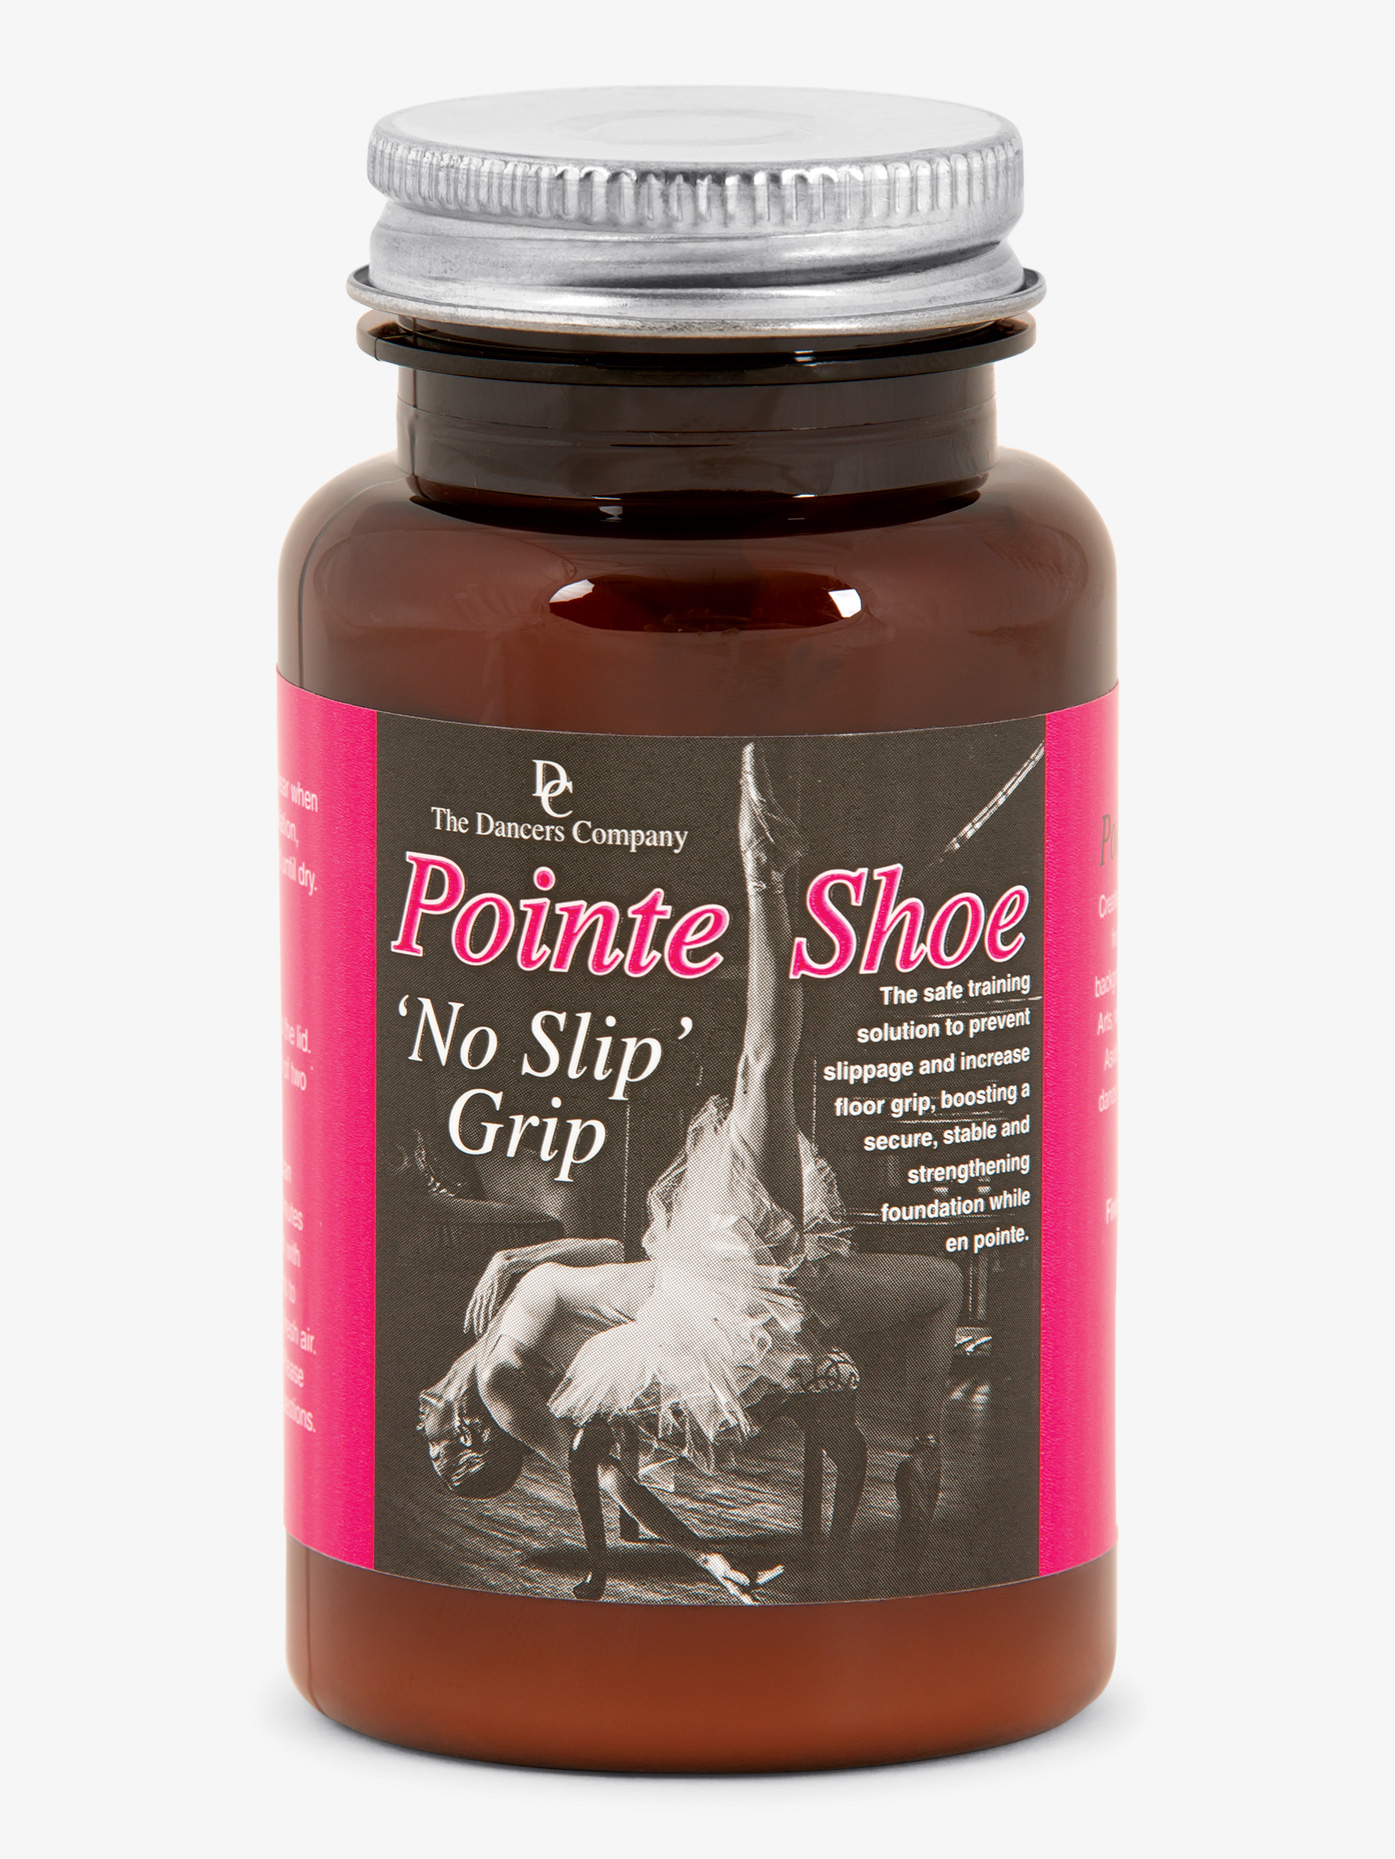 Dancers Company No Slip Grip Pointe Shoe Paste NOSLIP